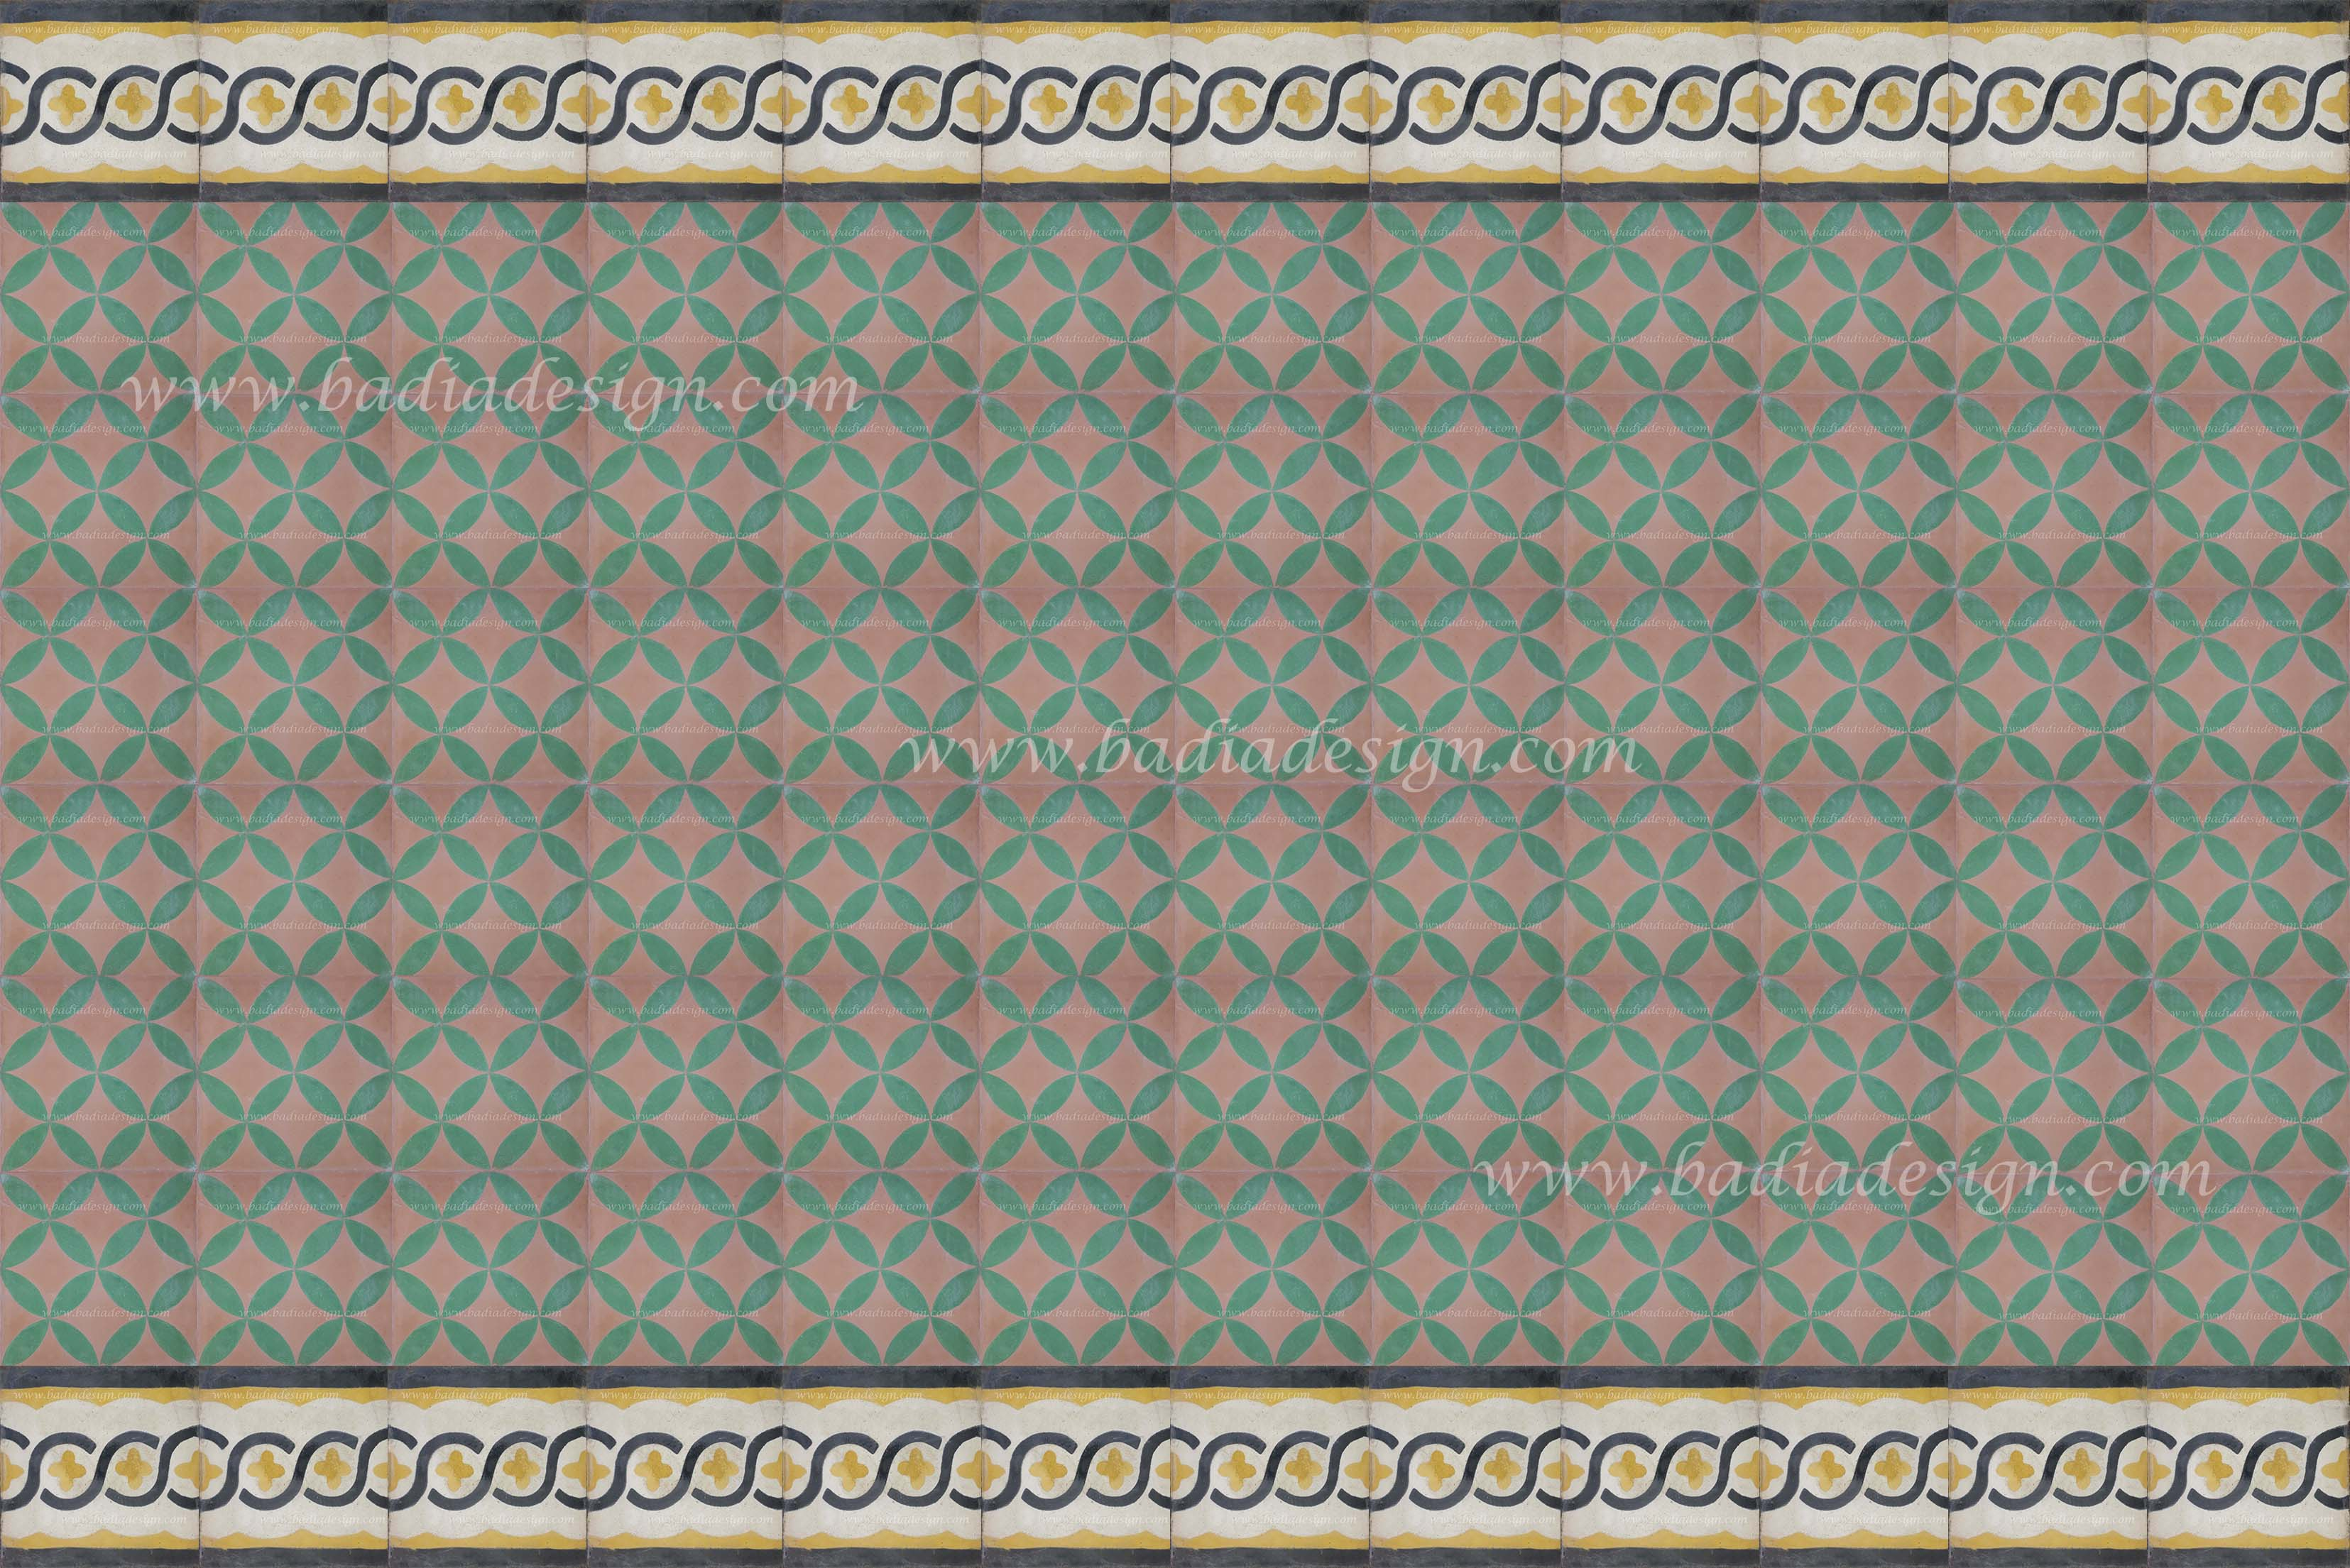 Magnificent moroccan tile for floor decor ideas with moroccan tile backsplash